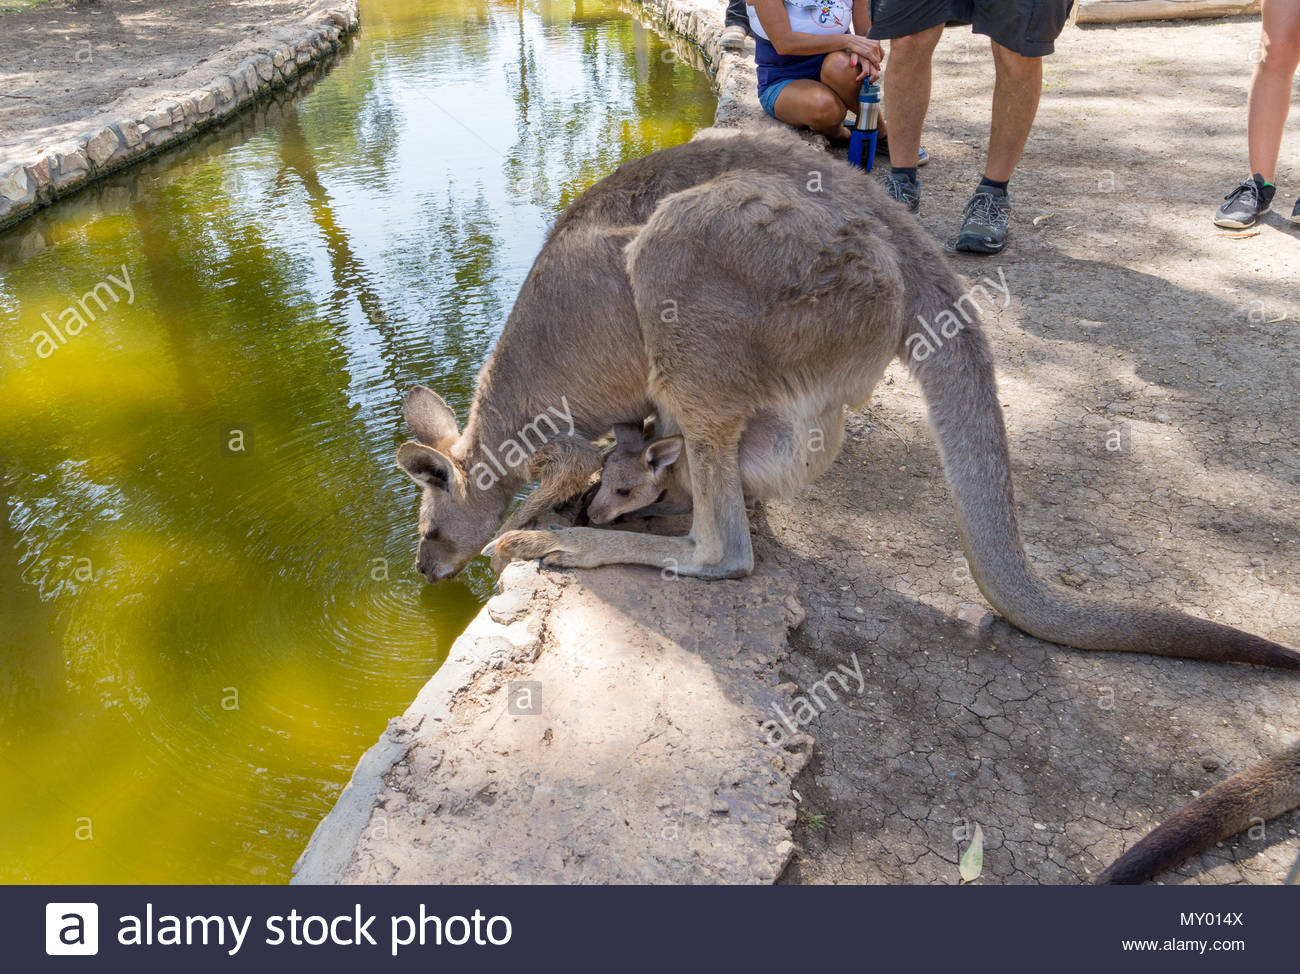 A joey kangaroo peeks out of the pouch as his mother takes a drink at the Gan Garoo park at Kibbutz Nir David in Israel - Stock Image